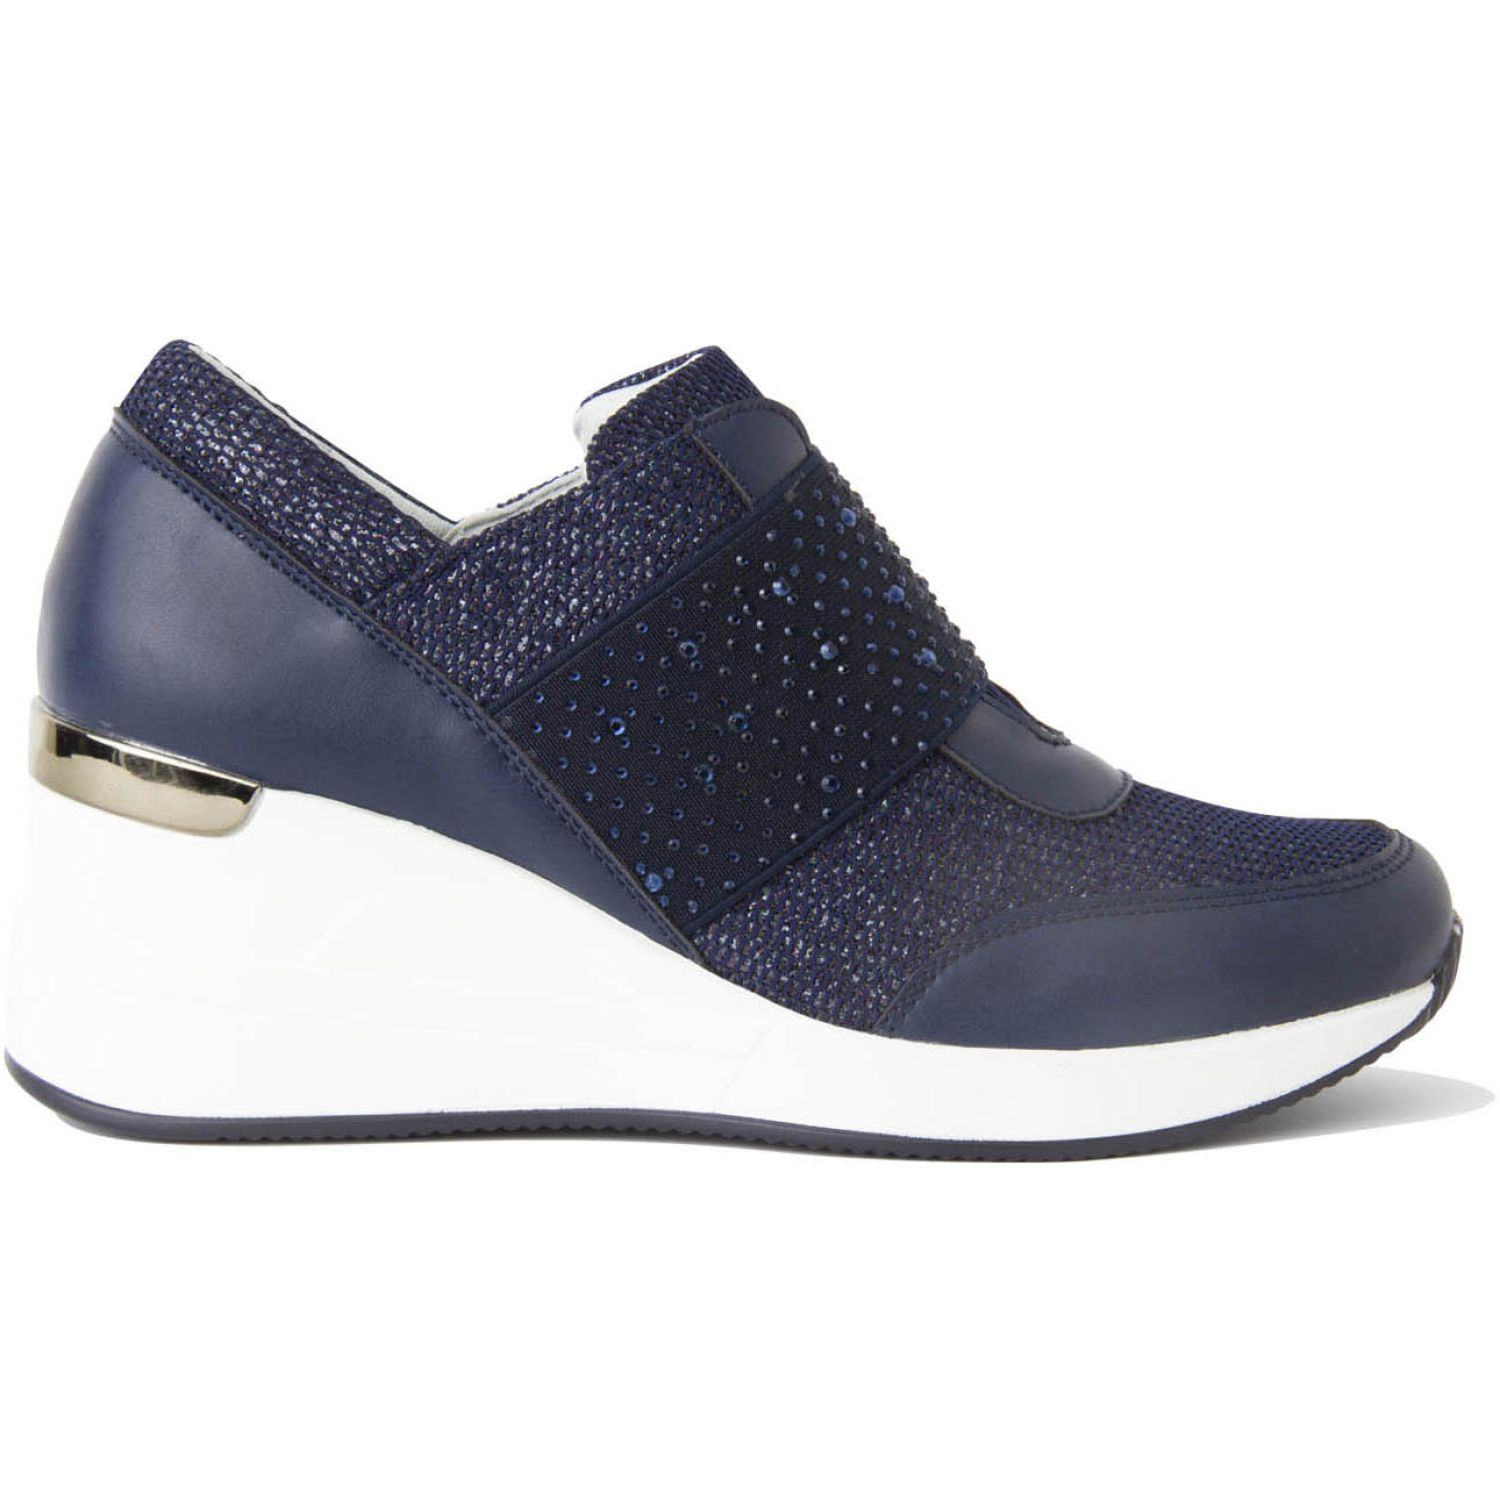 TIME CHOPPER Zapatillas 86125j2 Navy NAVY Zapatillas Fashion